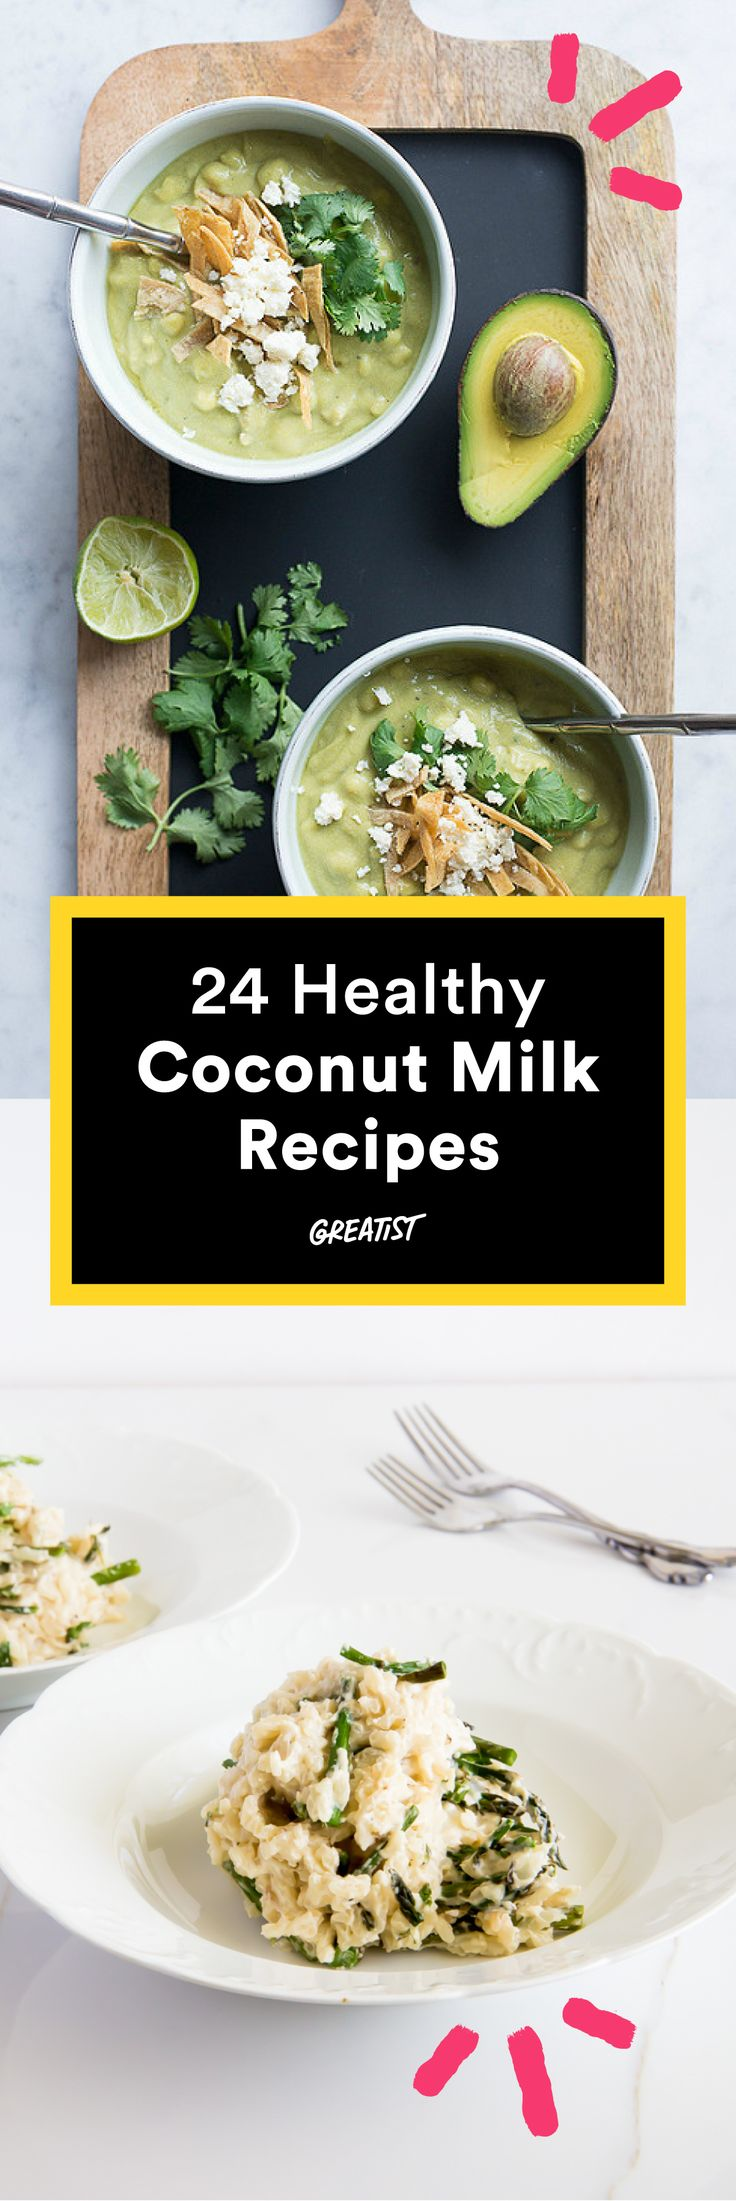 From curry to custard and everything in between. #healthy #coconutmilk #recipes http://greatist.com/eat/coconut-milk-recipes-for-every-meal